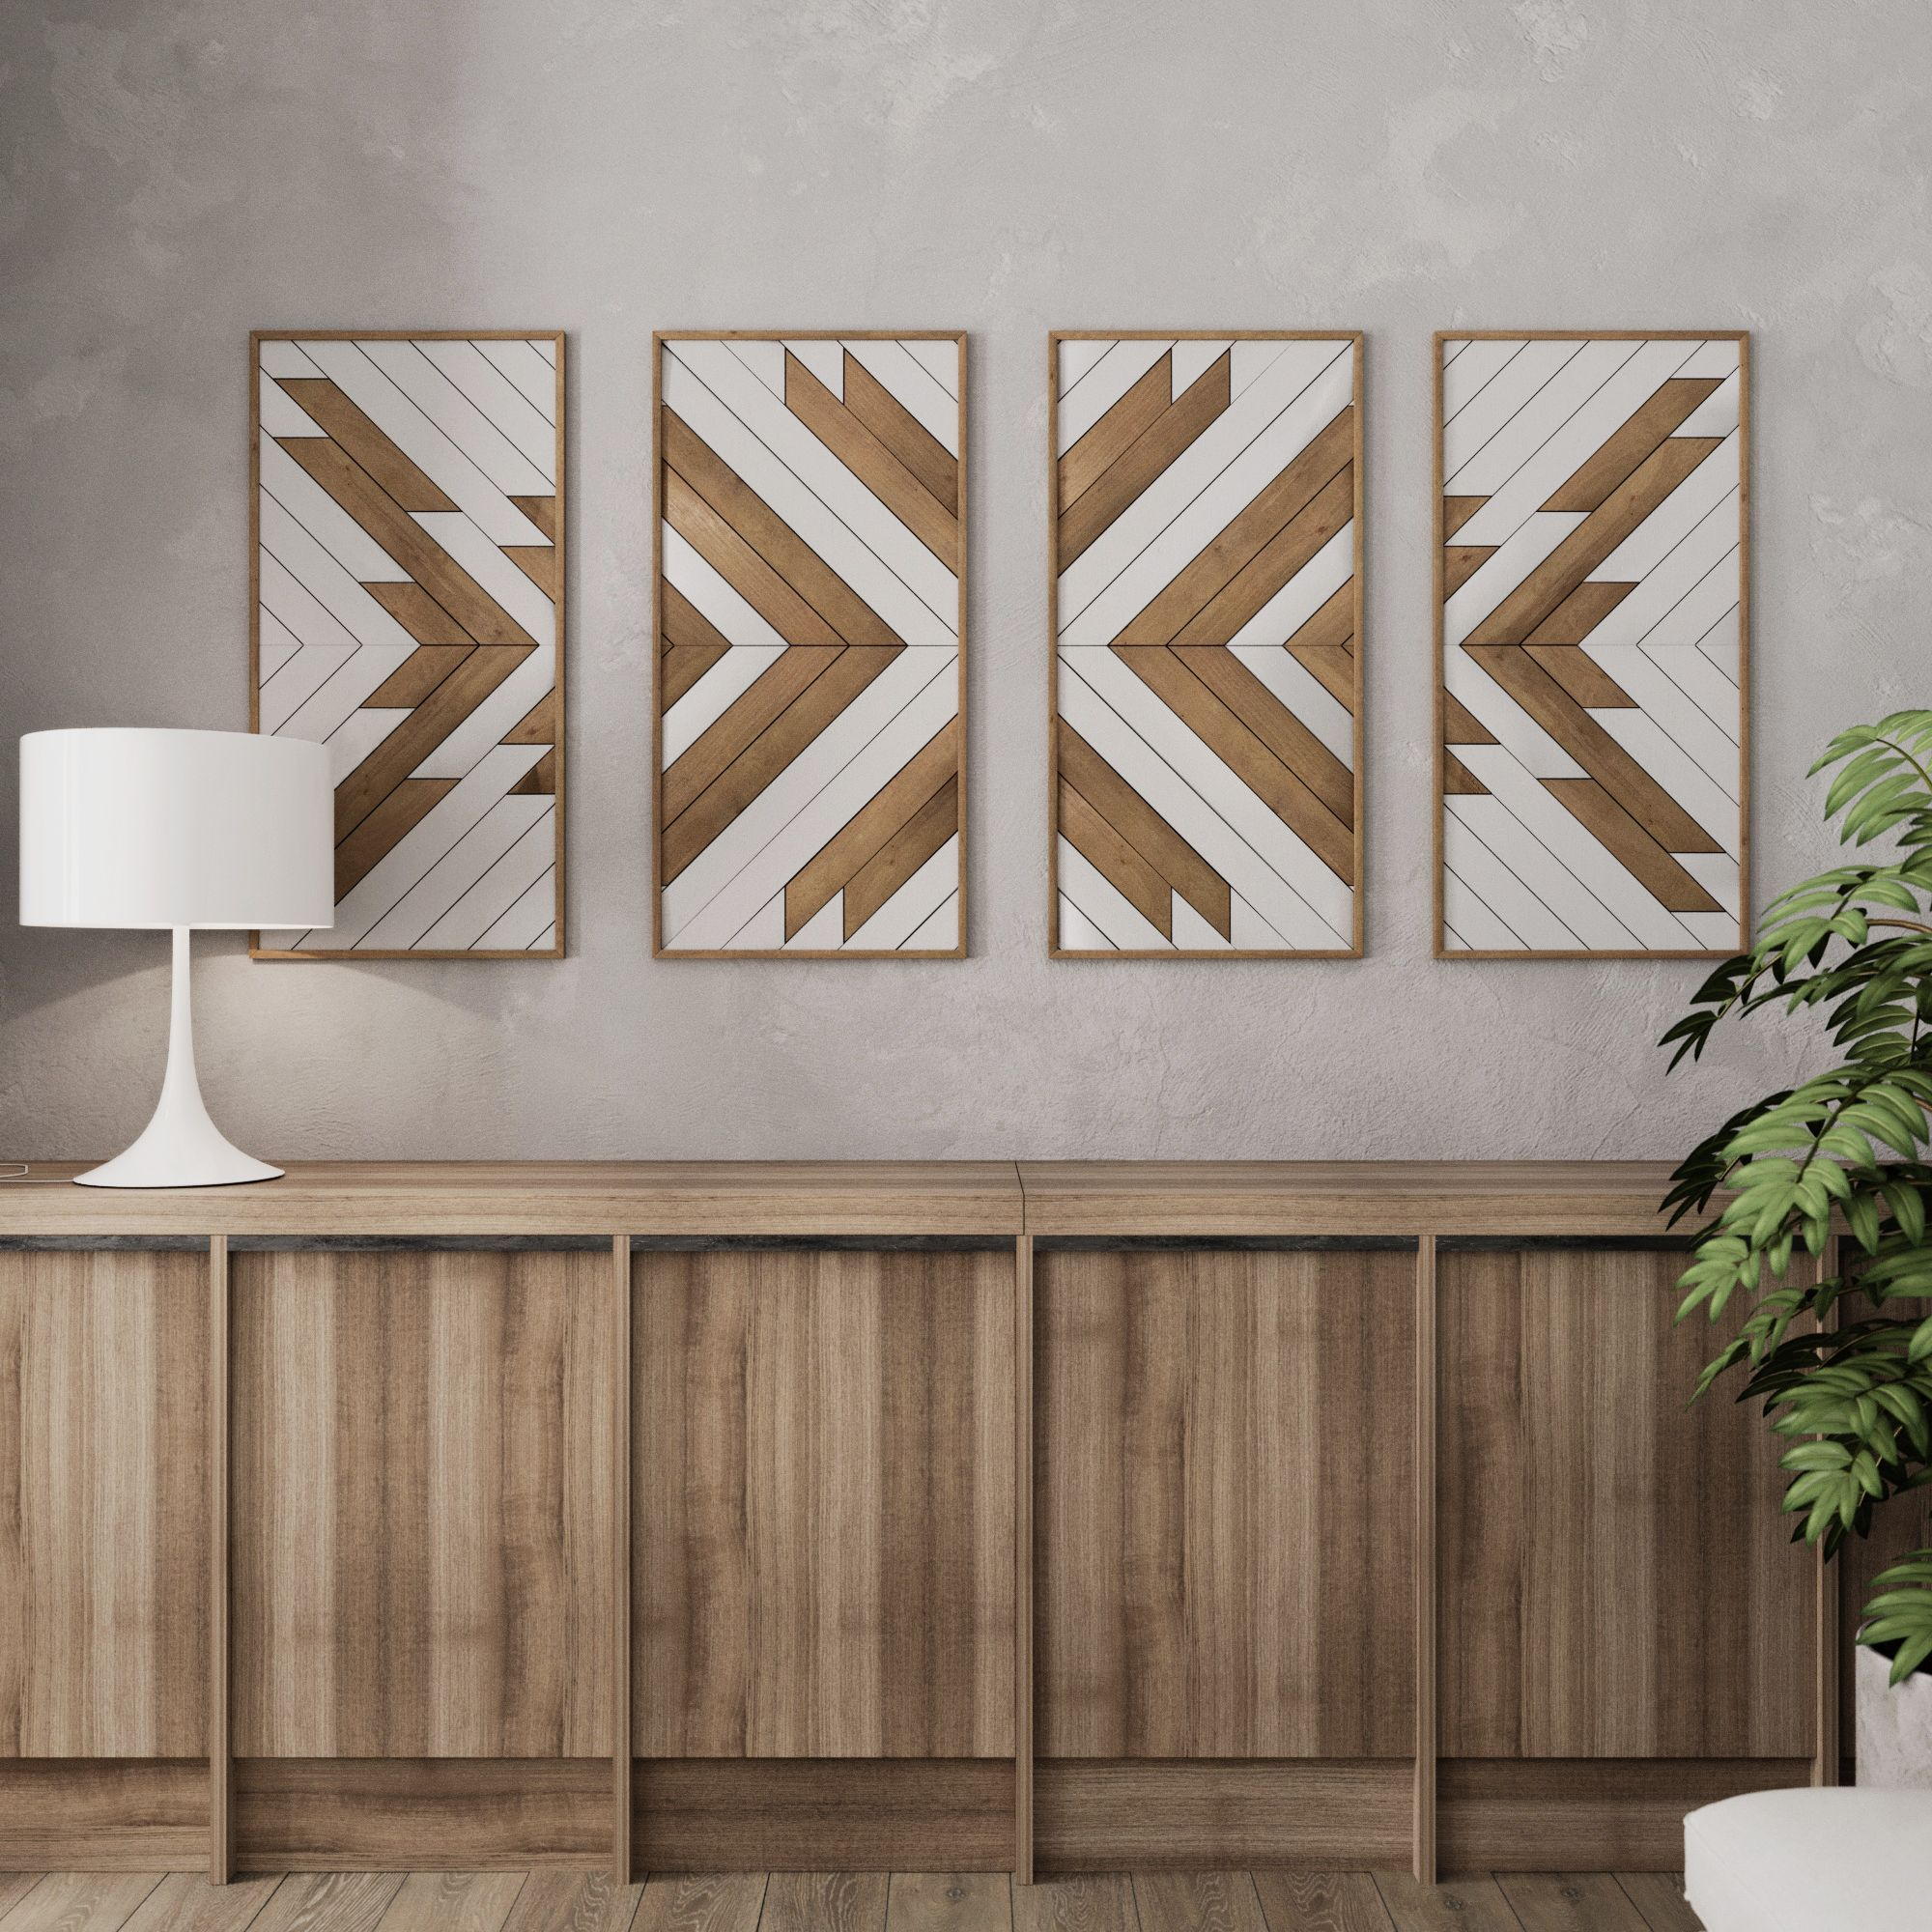 Native Pattern Wood Wall Art Set Large Wooden Wall Art Etsy Wood Wall Art Rustic Wood Wall Art Rustic Wall Art